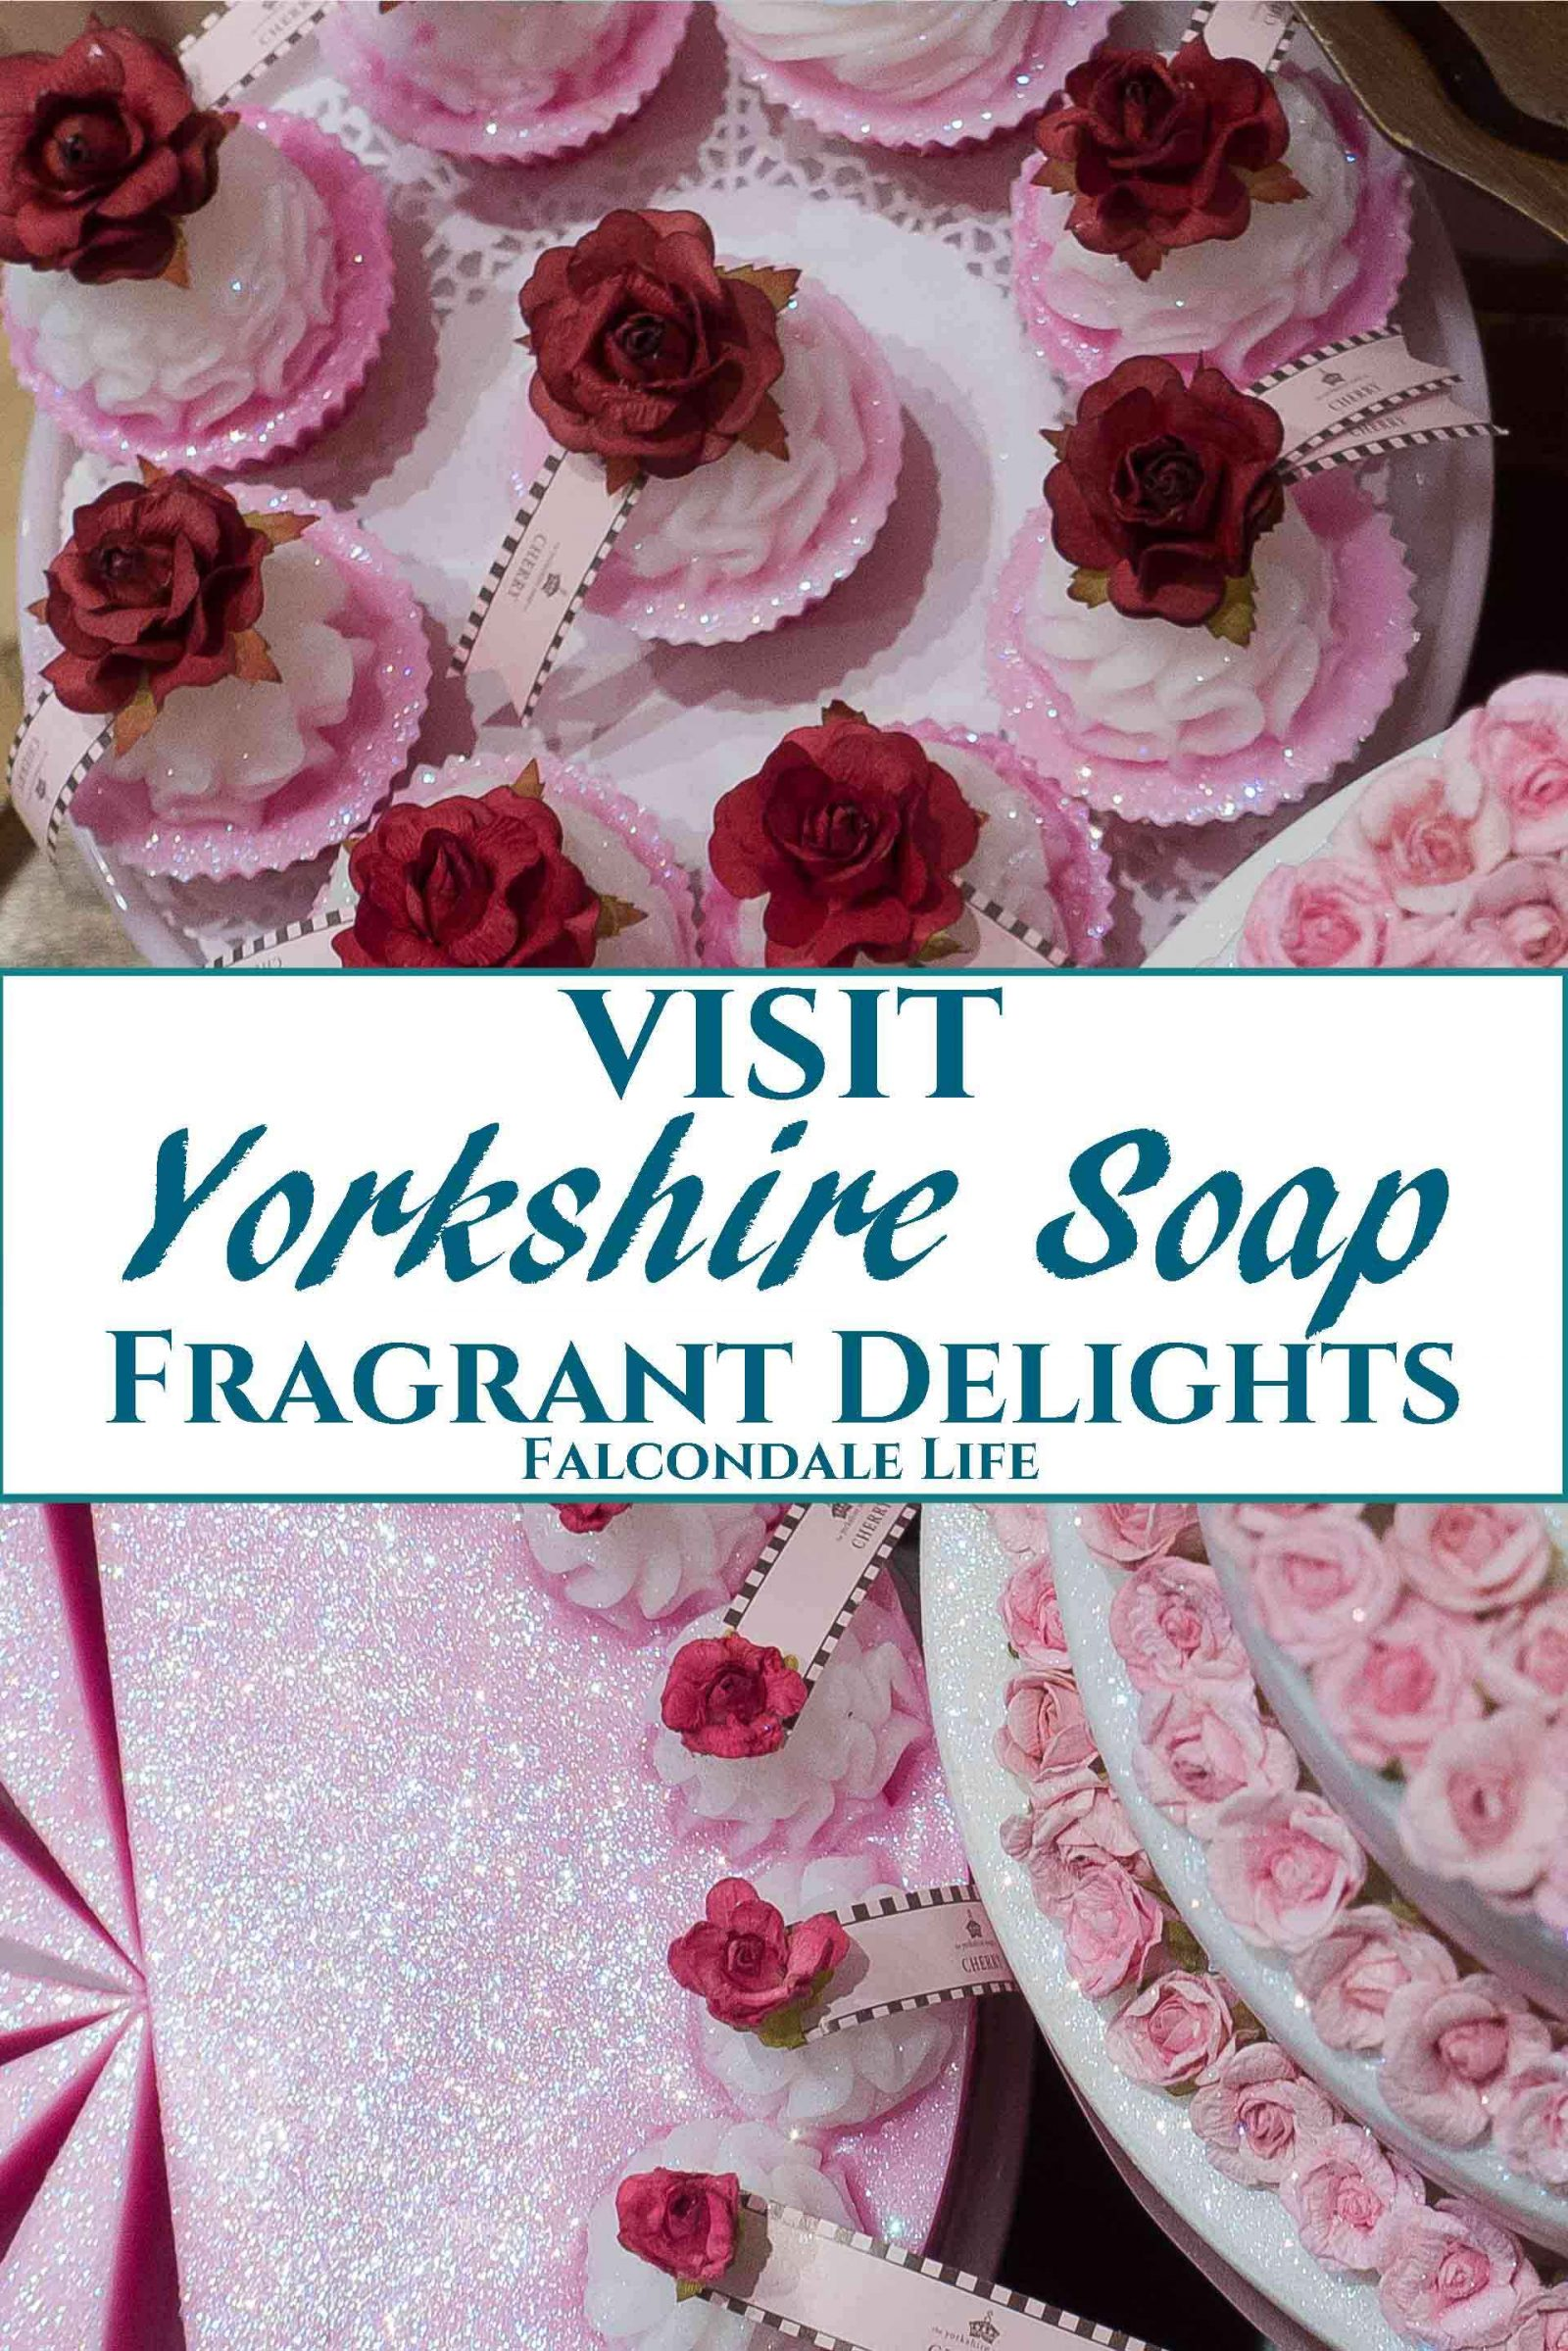 Visit Yorkshire Soap – Fragrant Delights and £100 Prizedraw